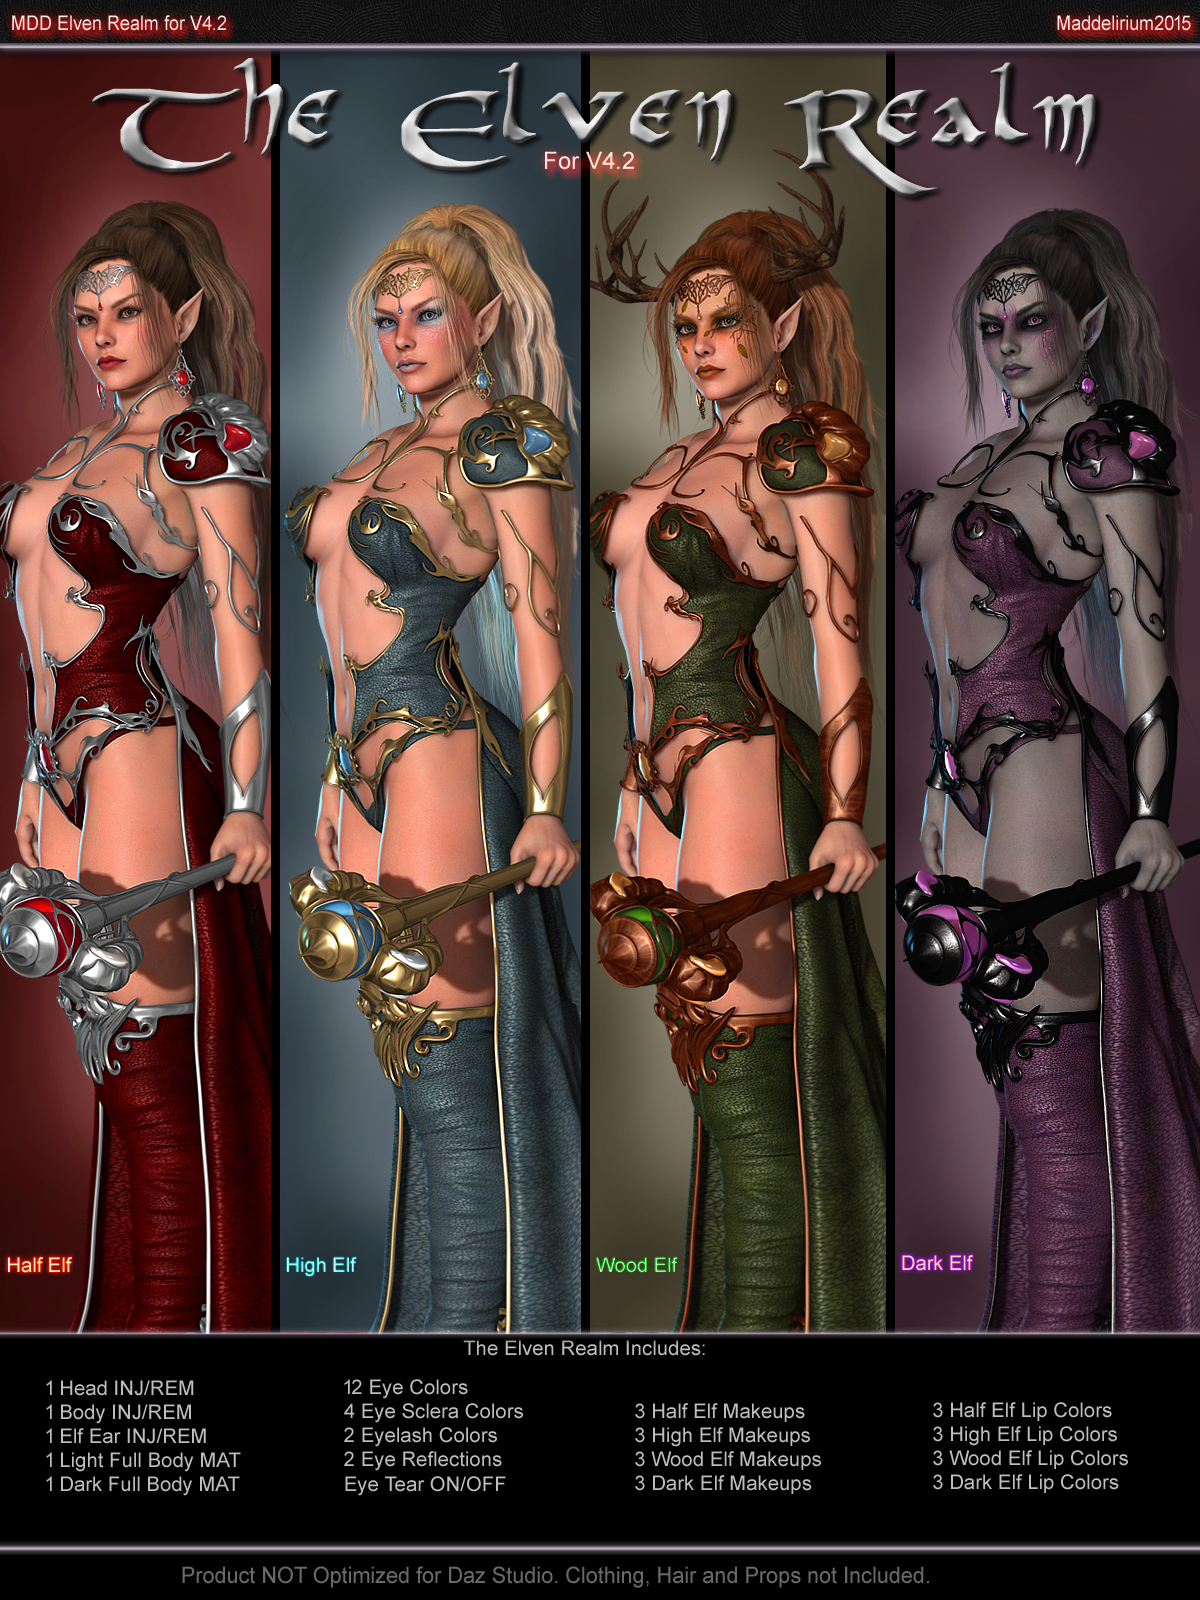 MDD The Elven Realm for V4.2byMaddelirium()